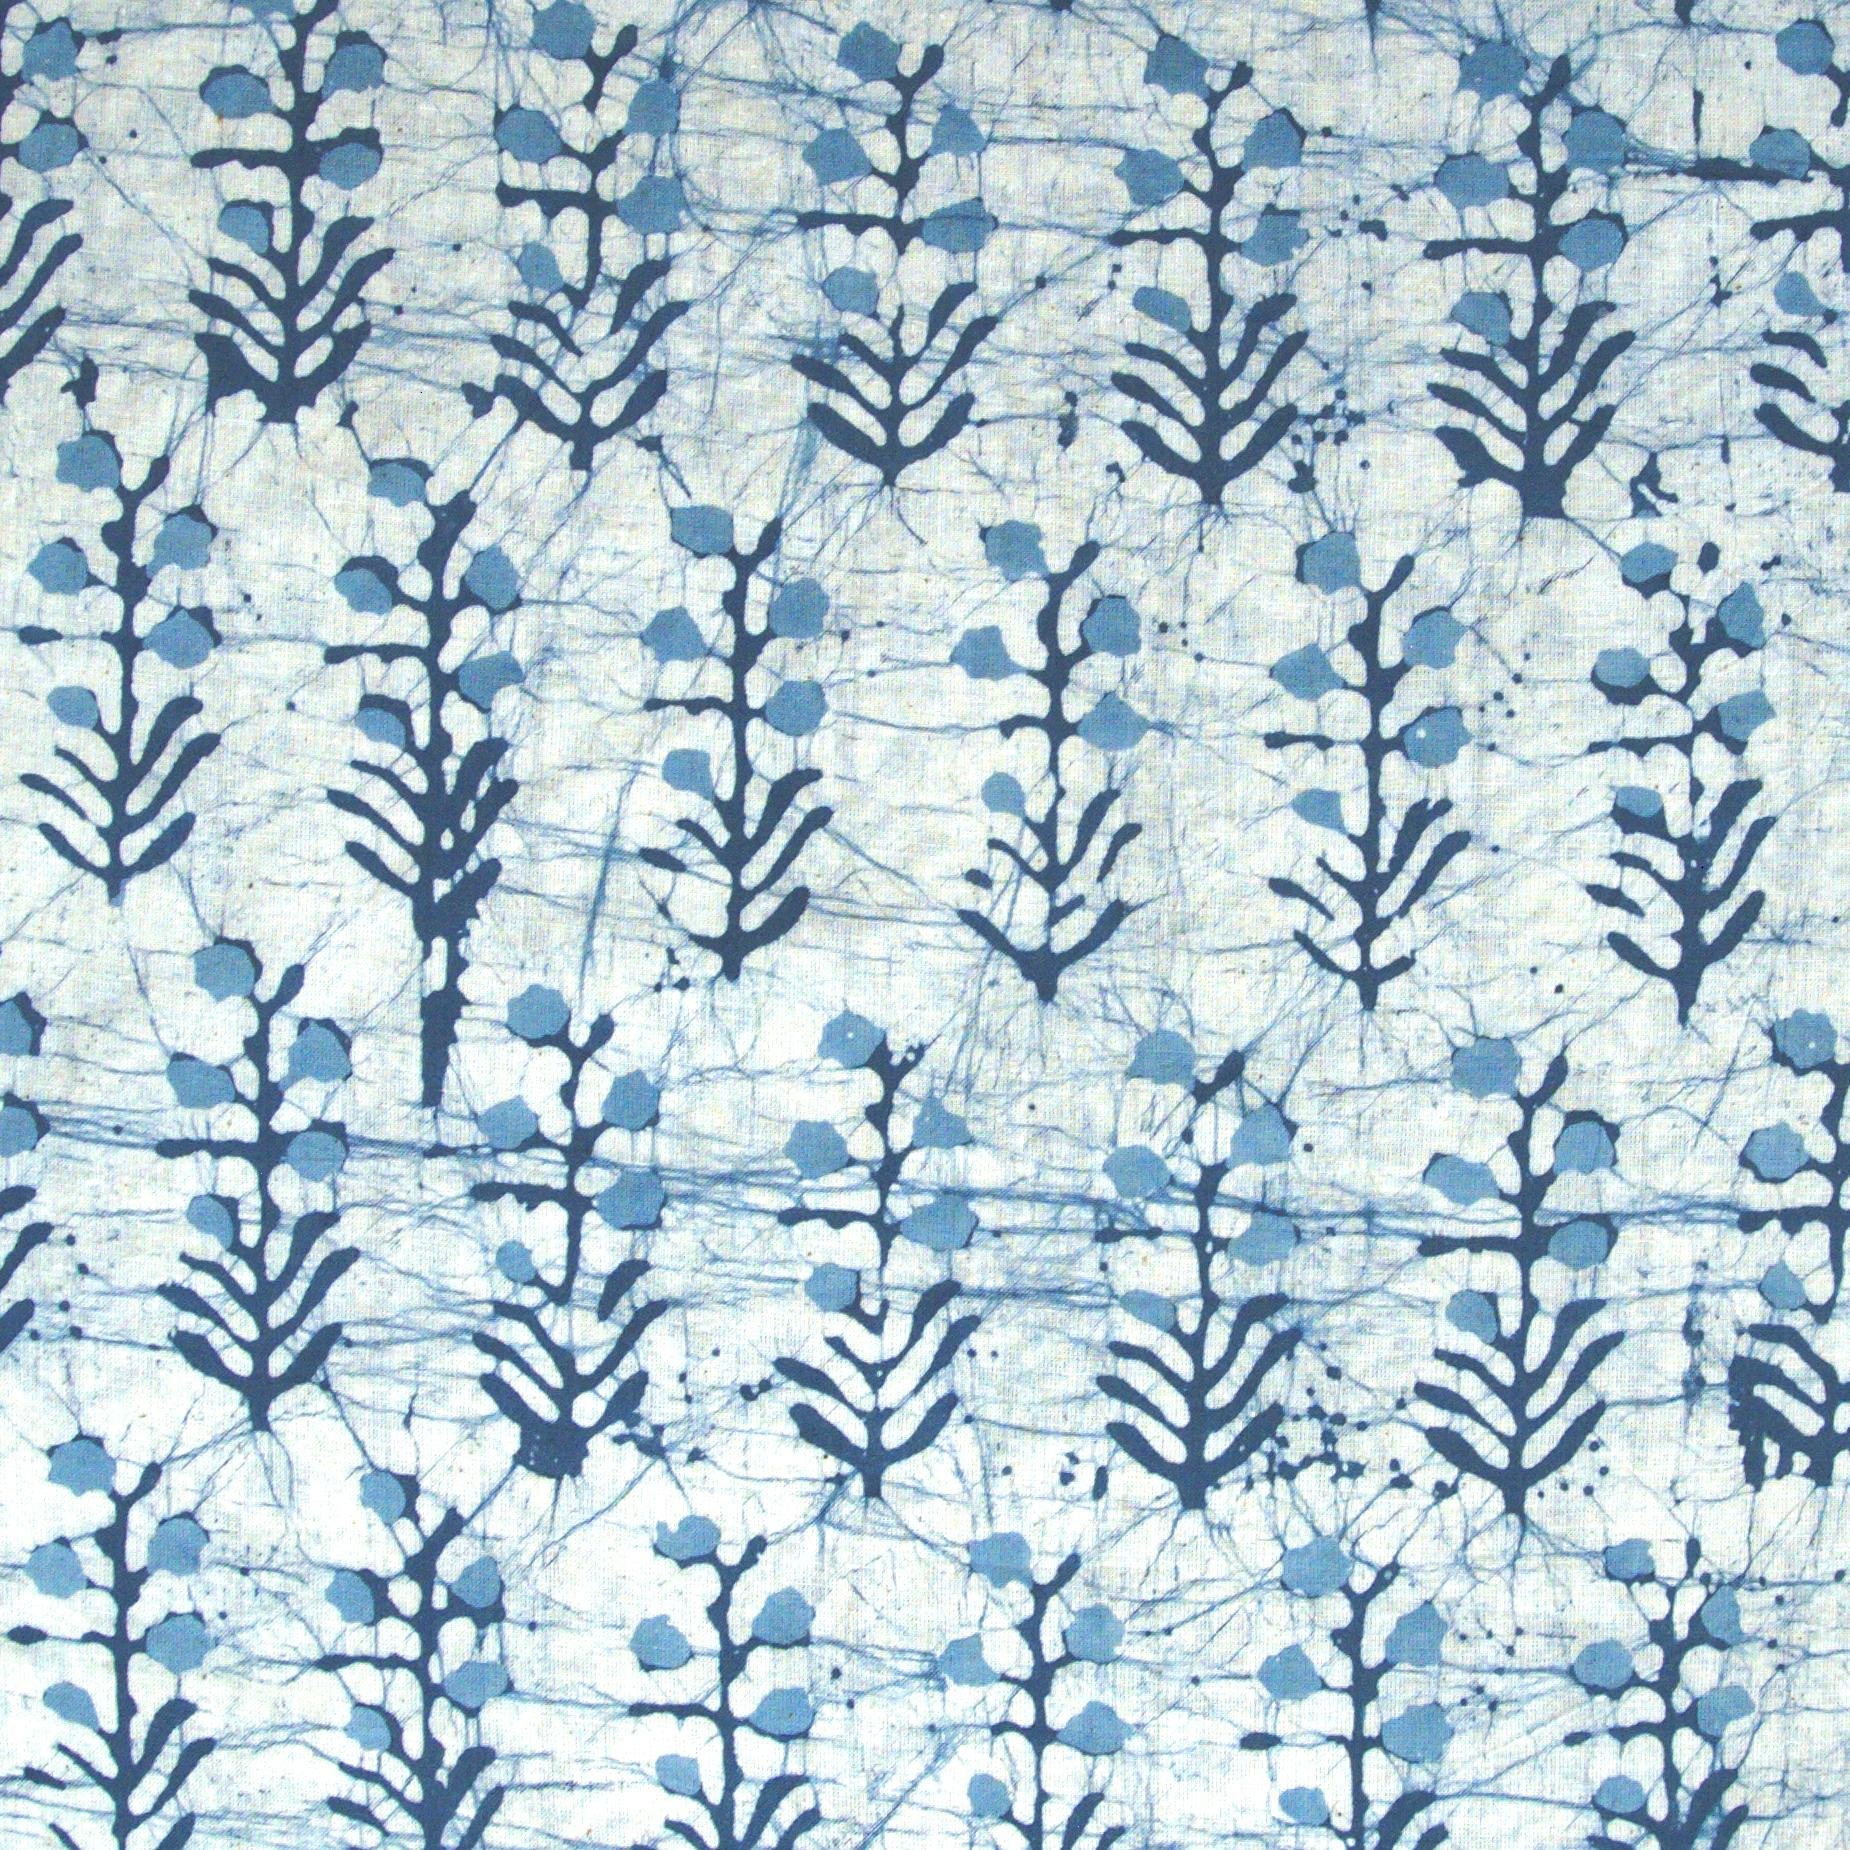 2 - SHA13 - 100% Block-Printed Batik Cotton Fabric From India - Batik - Blue Bhil Buto